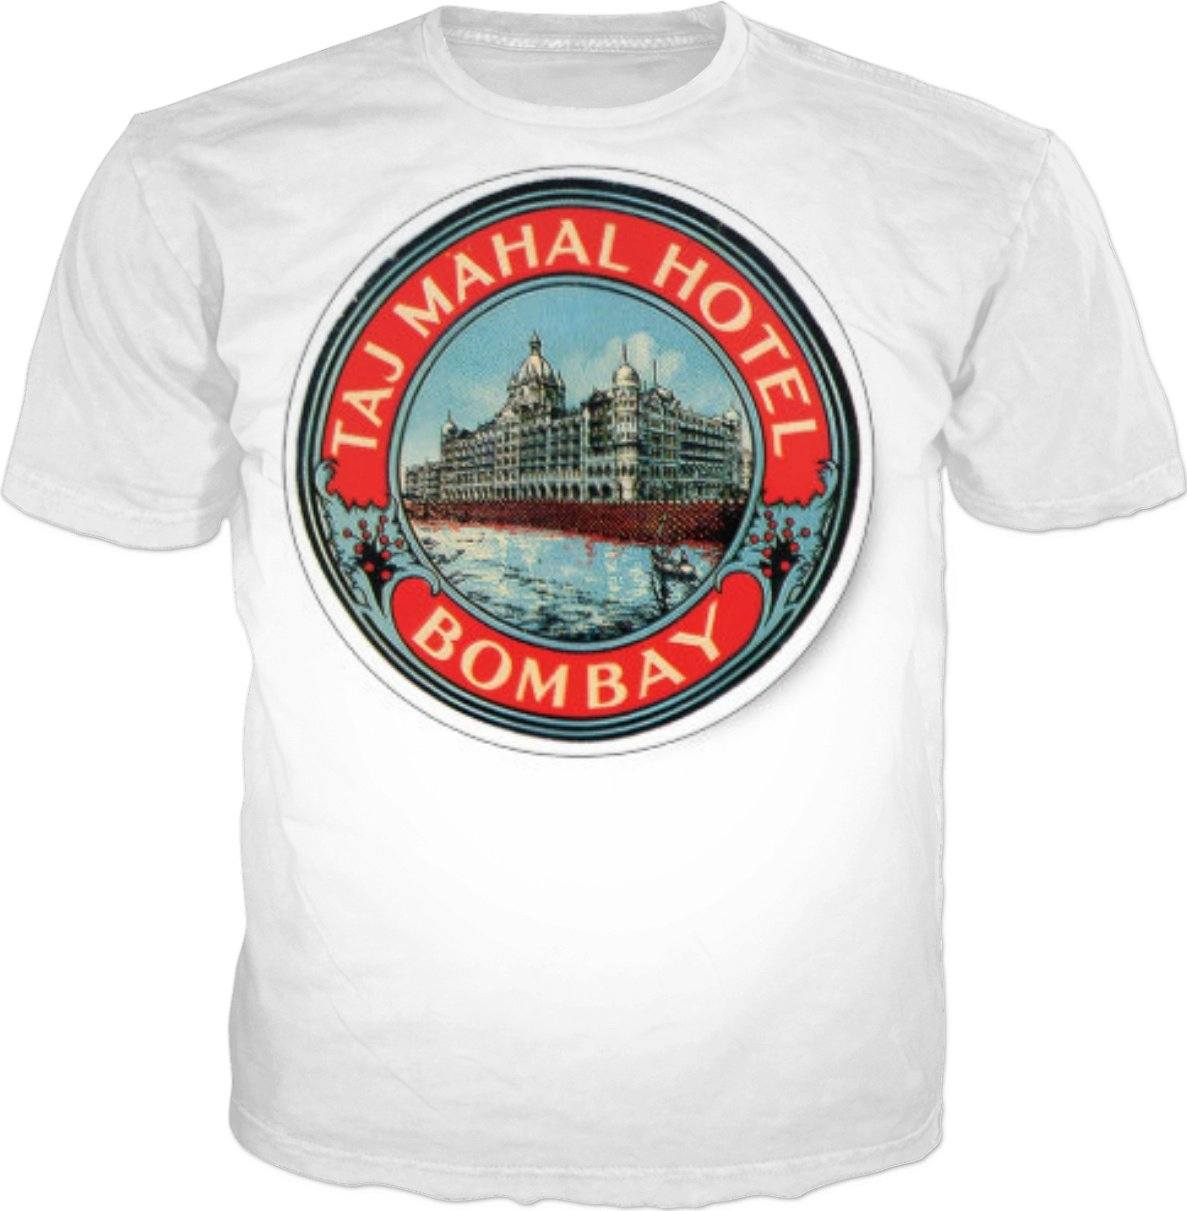 products/t-shirts-the-taj-1.jpg